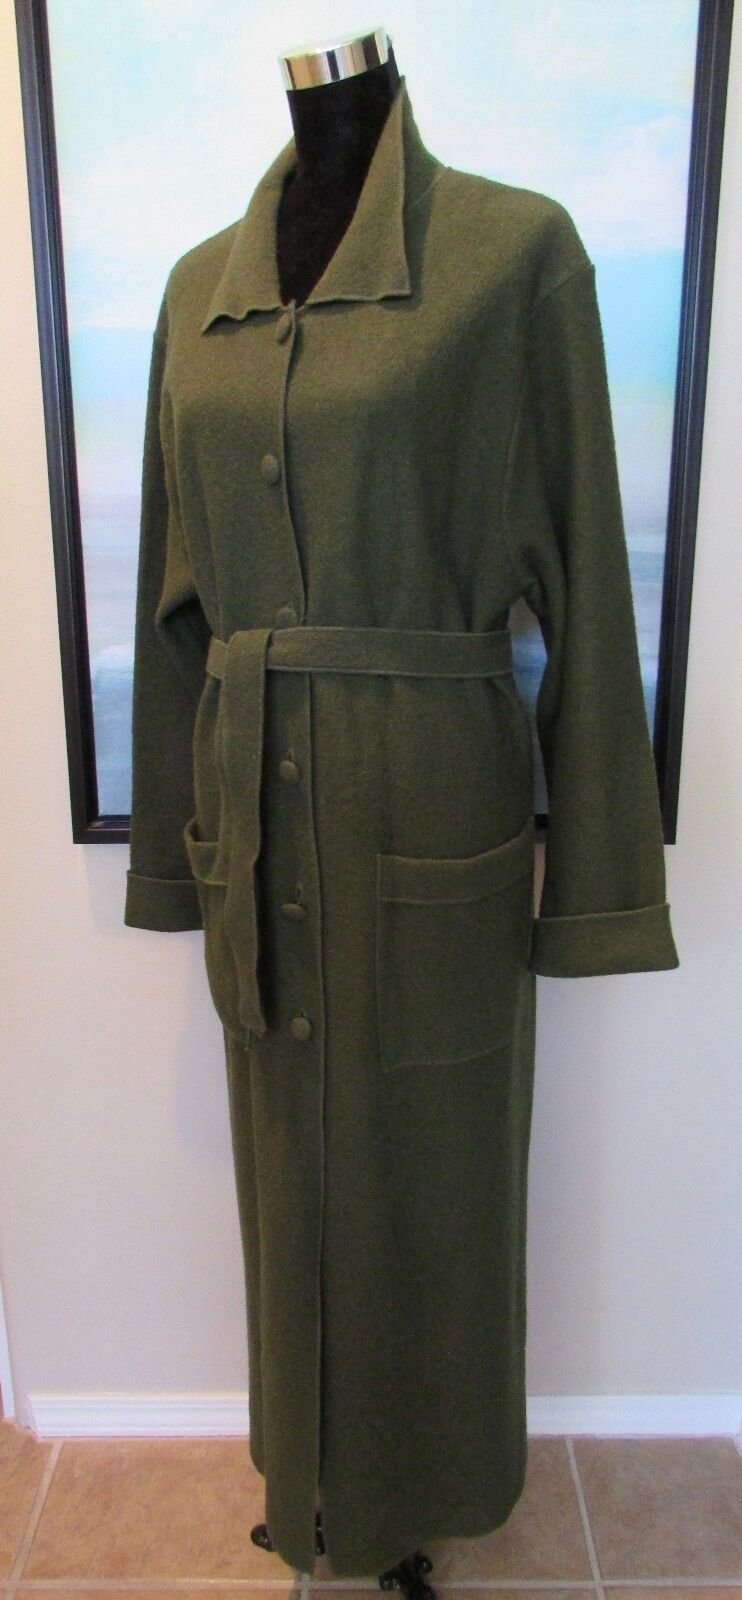 April Cornell Loden Green Boiled Wool Coat Sz S S S M 078df6